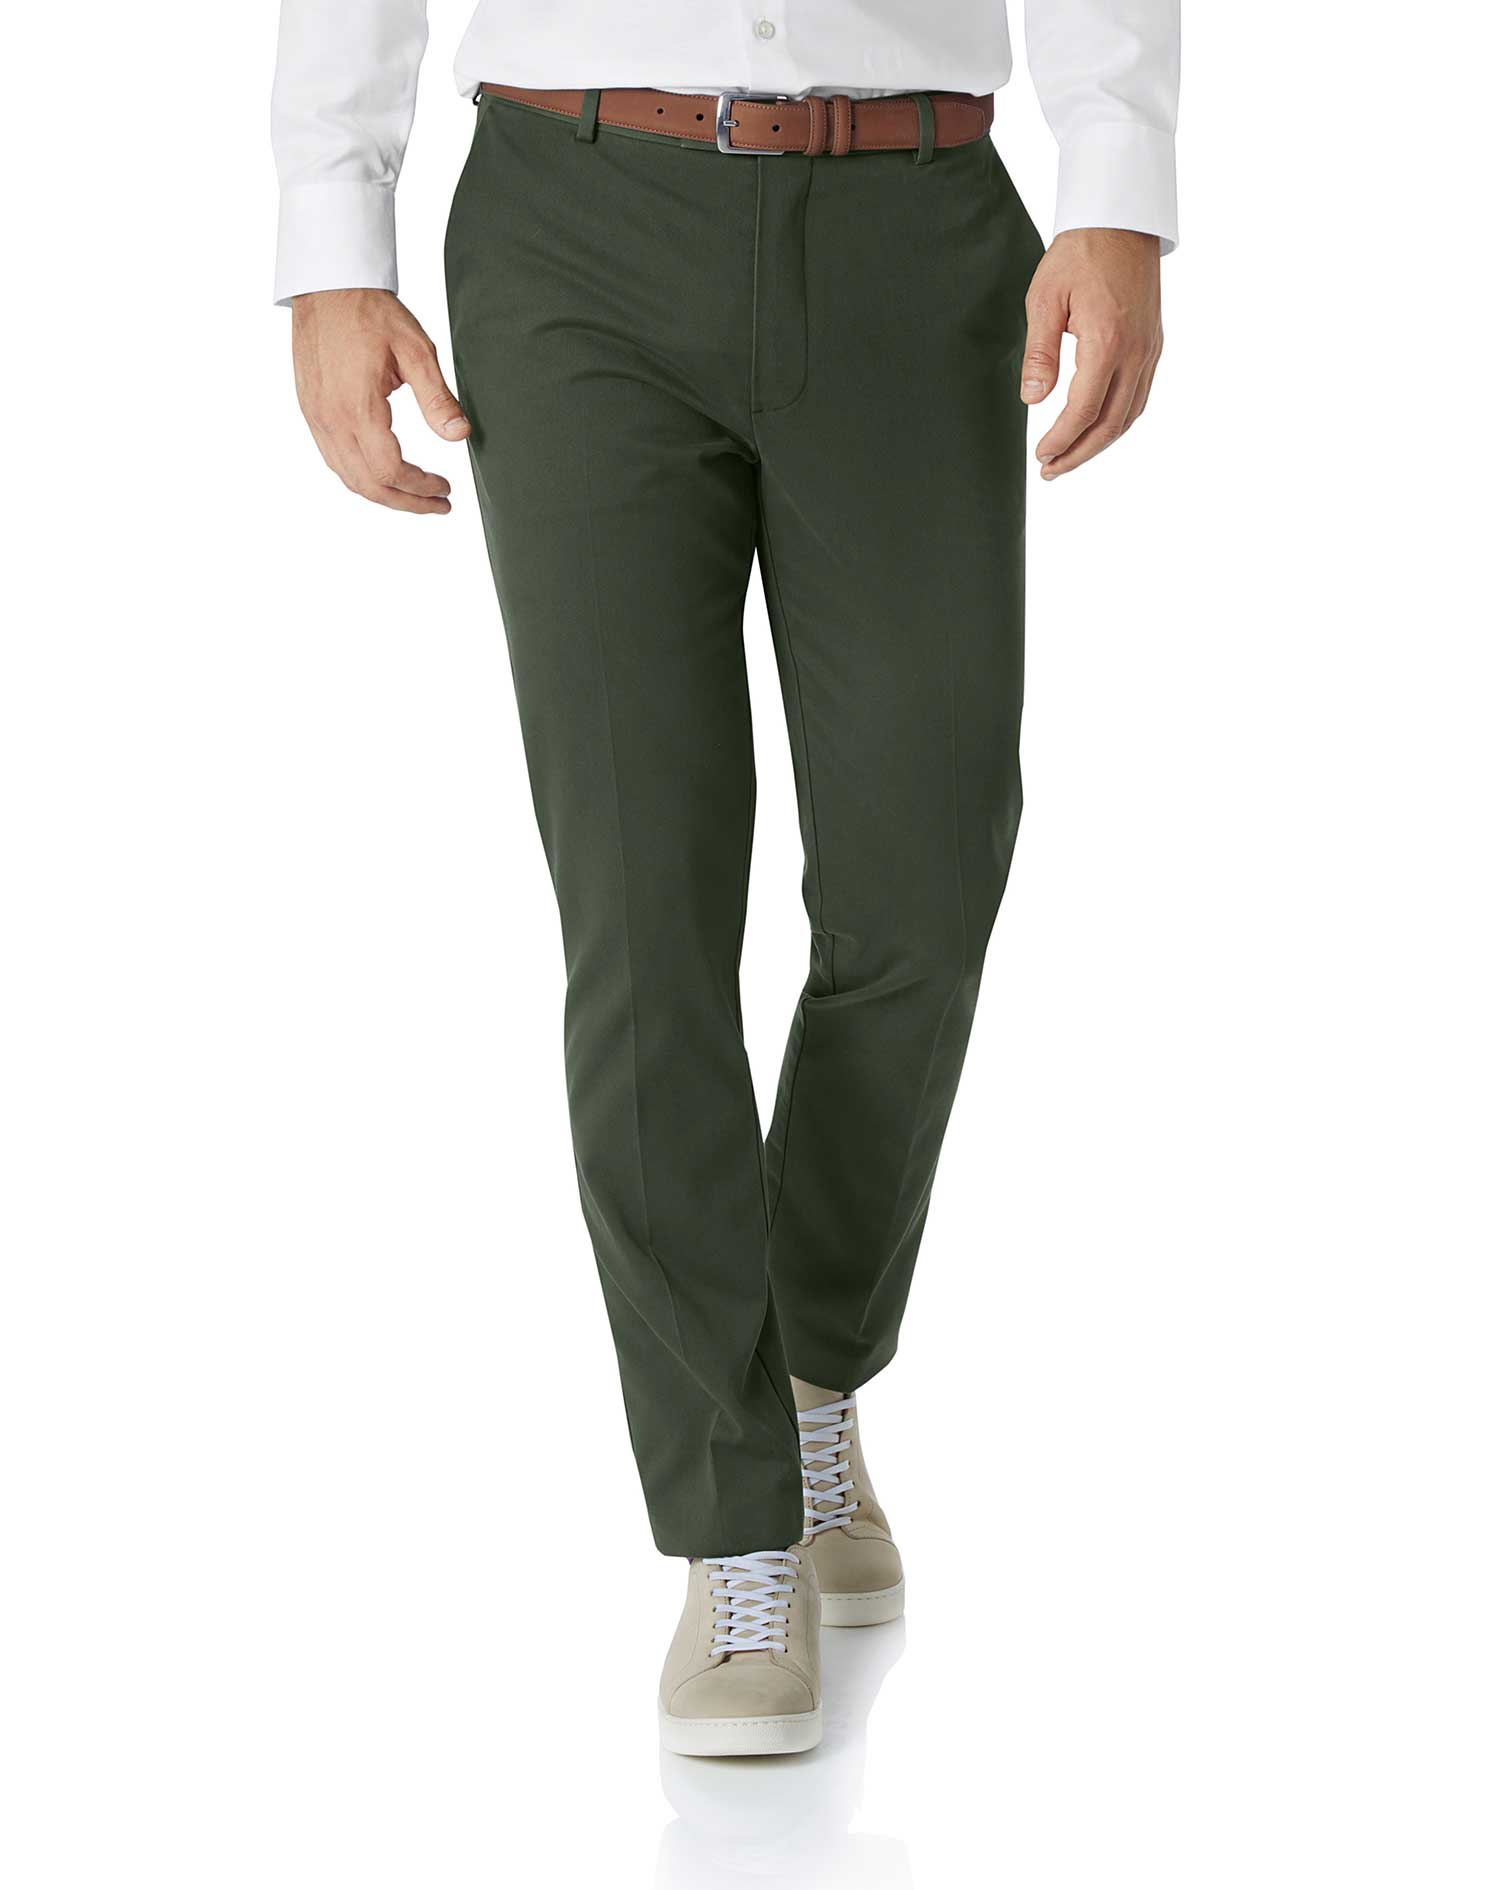 Dark Green Extra Slim Fit Flat Front Non-Iron Cotton Chino Trousers Size W34 L30 by Charles Tyrwhitt